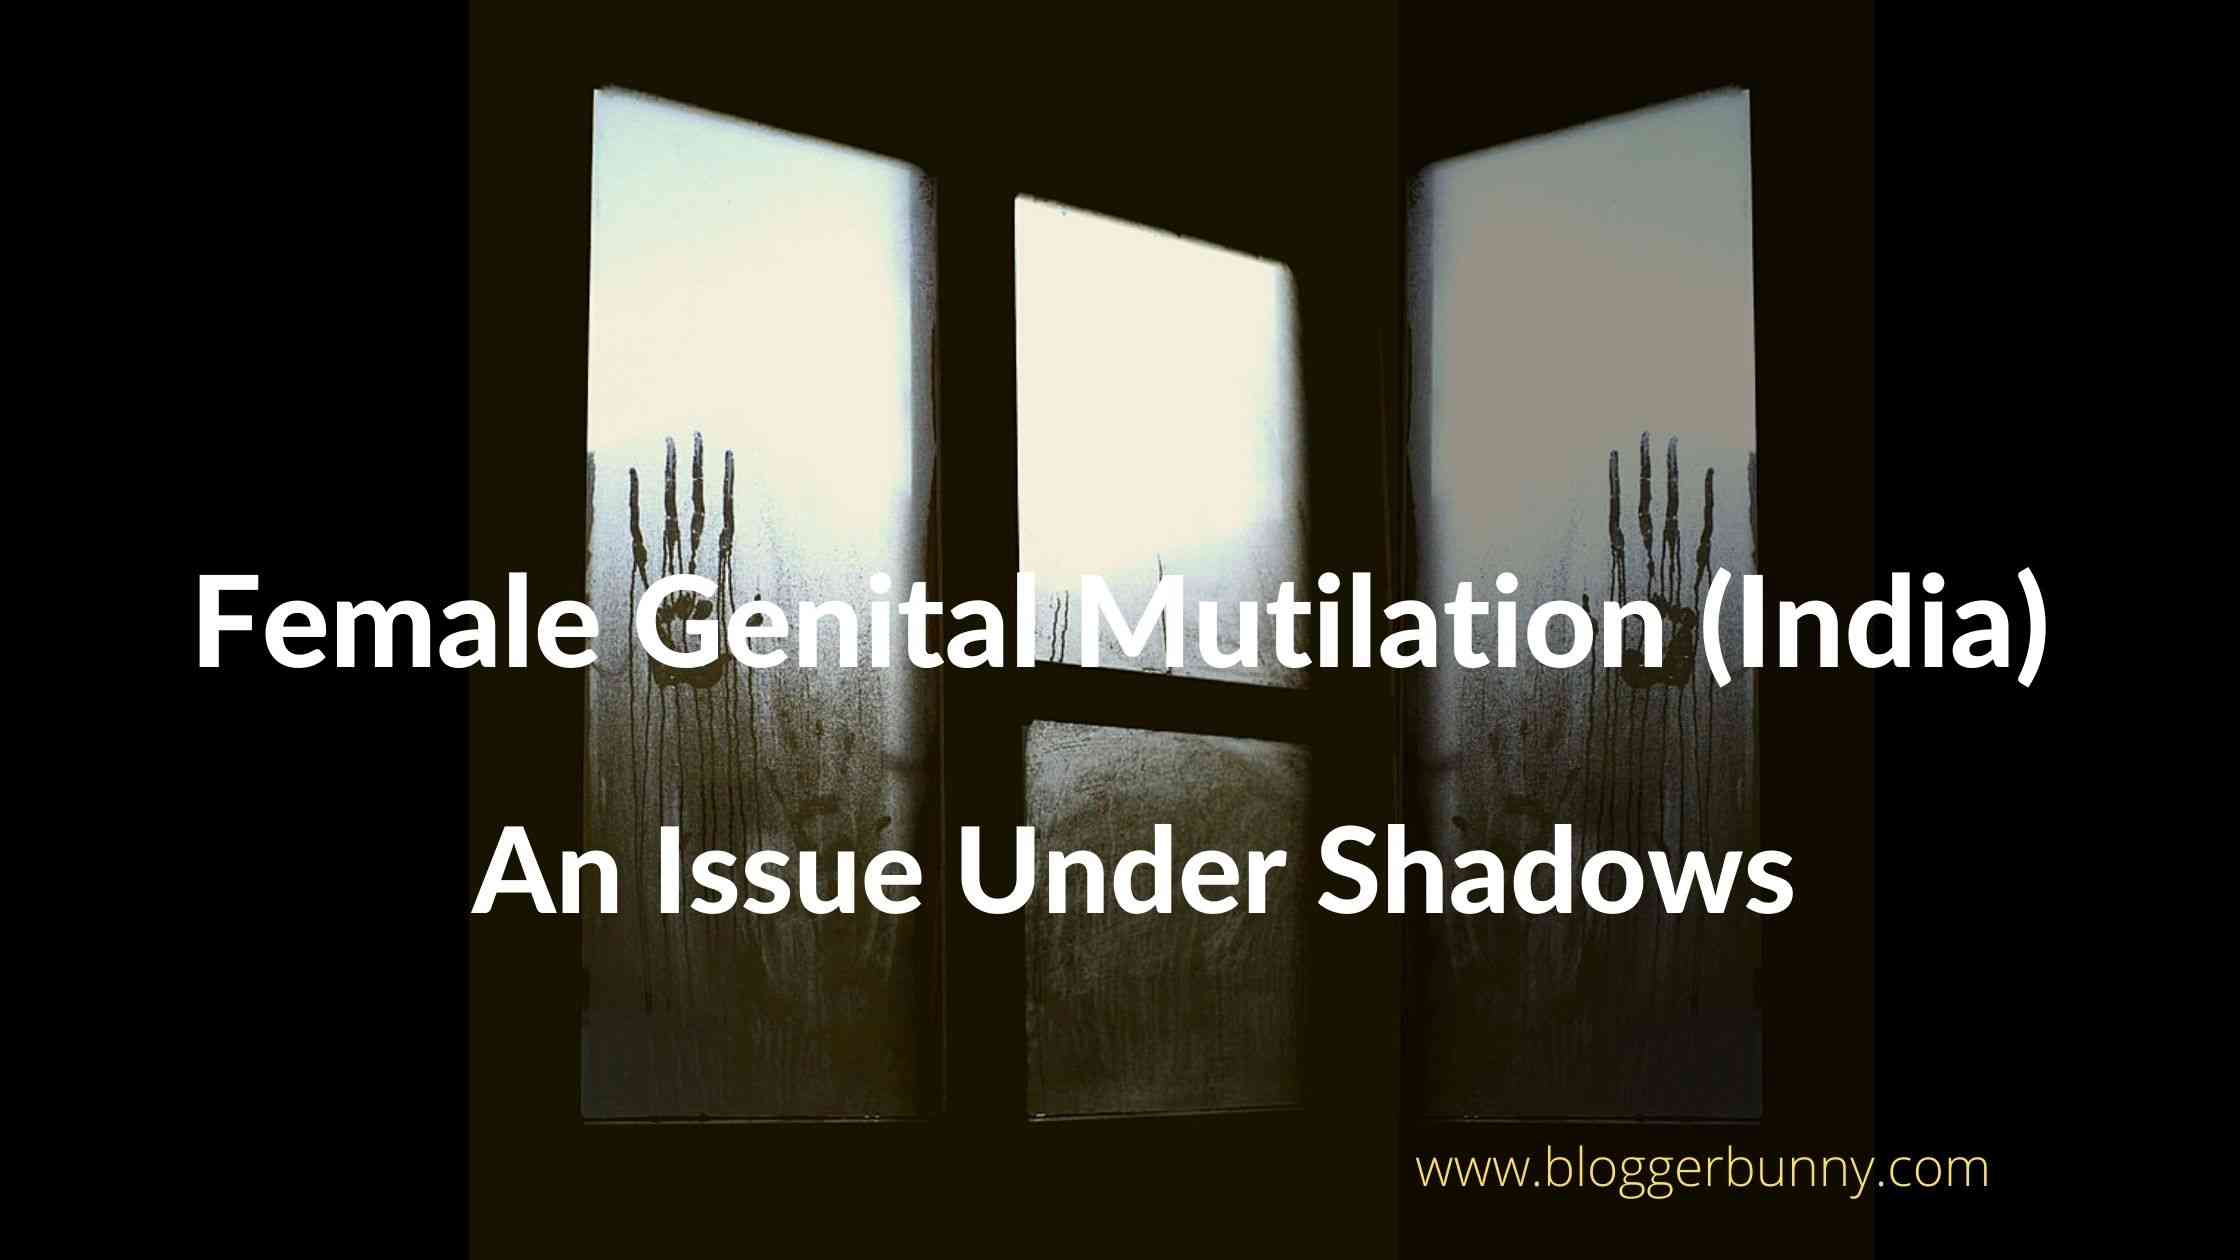 Female Genital Mutilation(India): An Issue Under Shadows